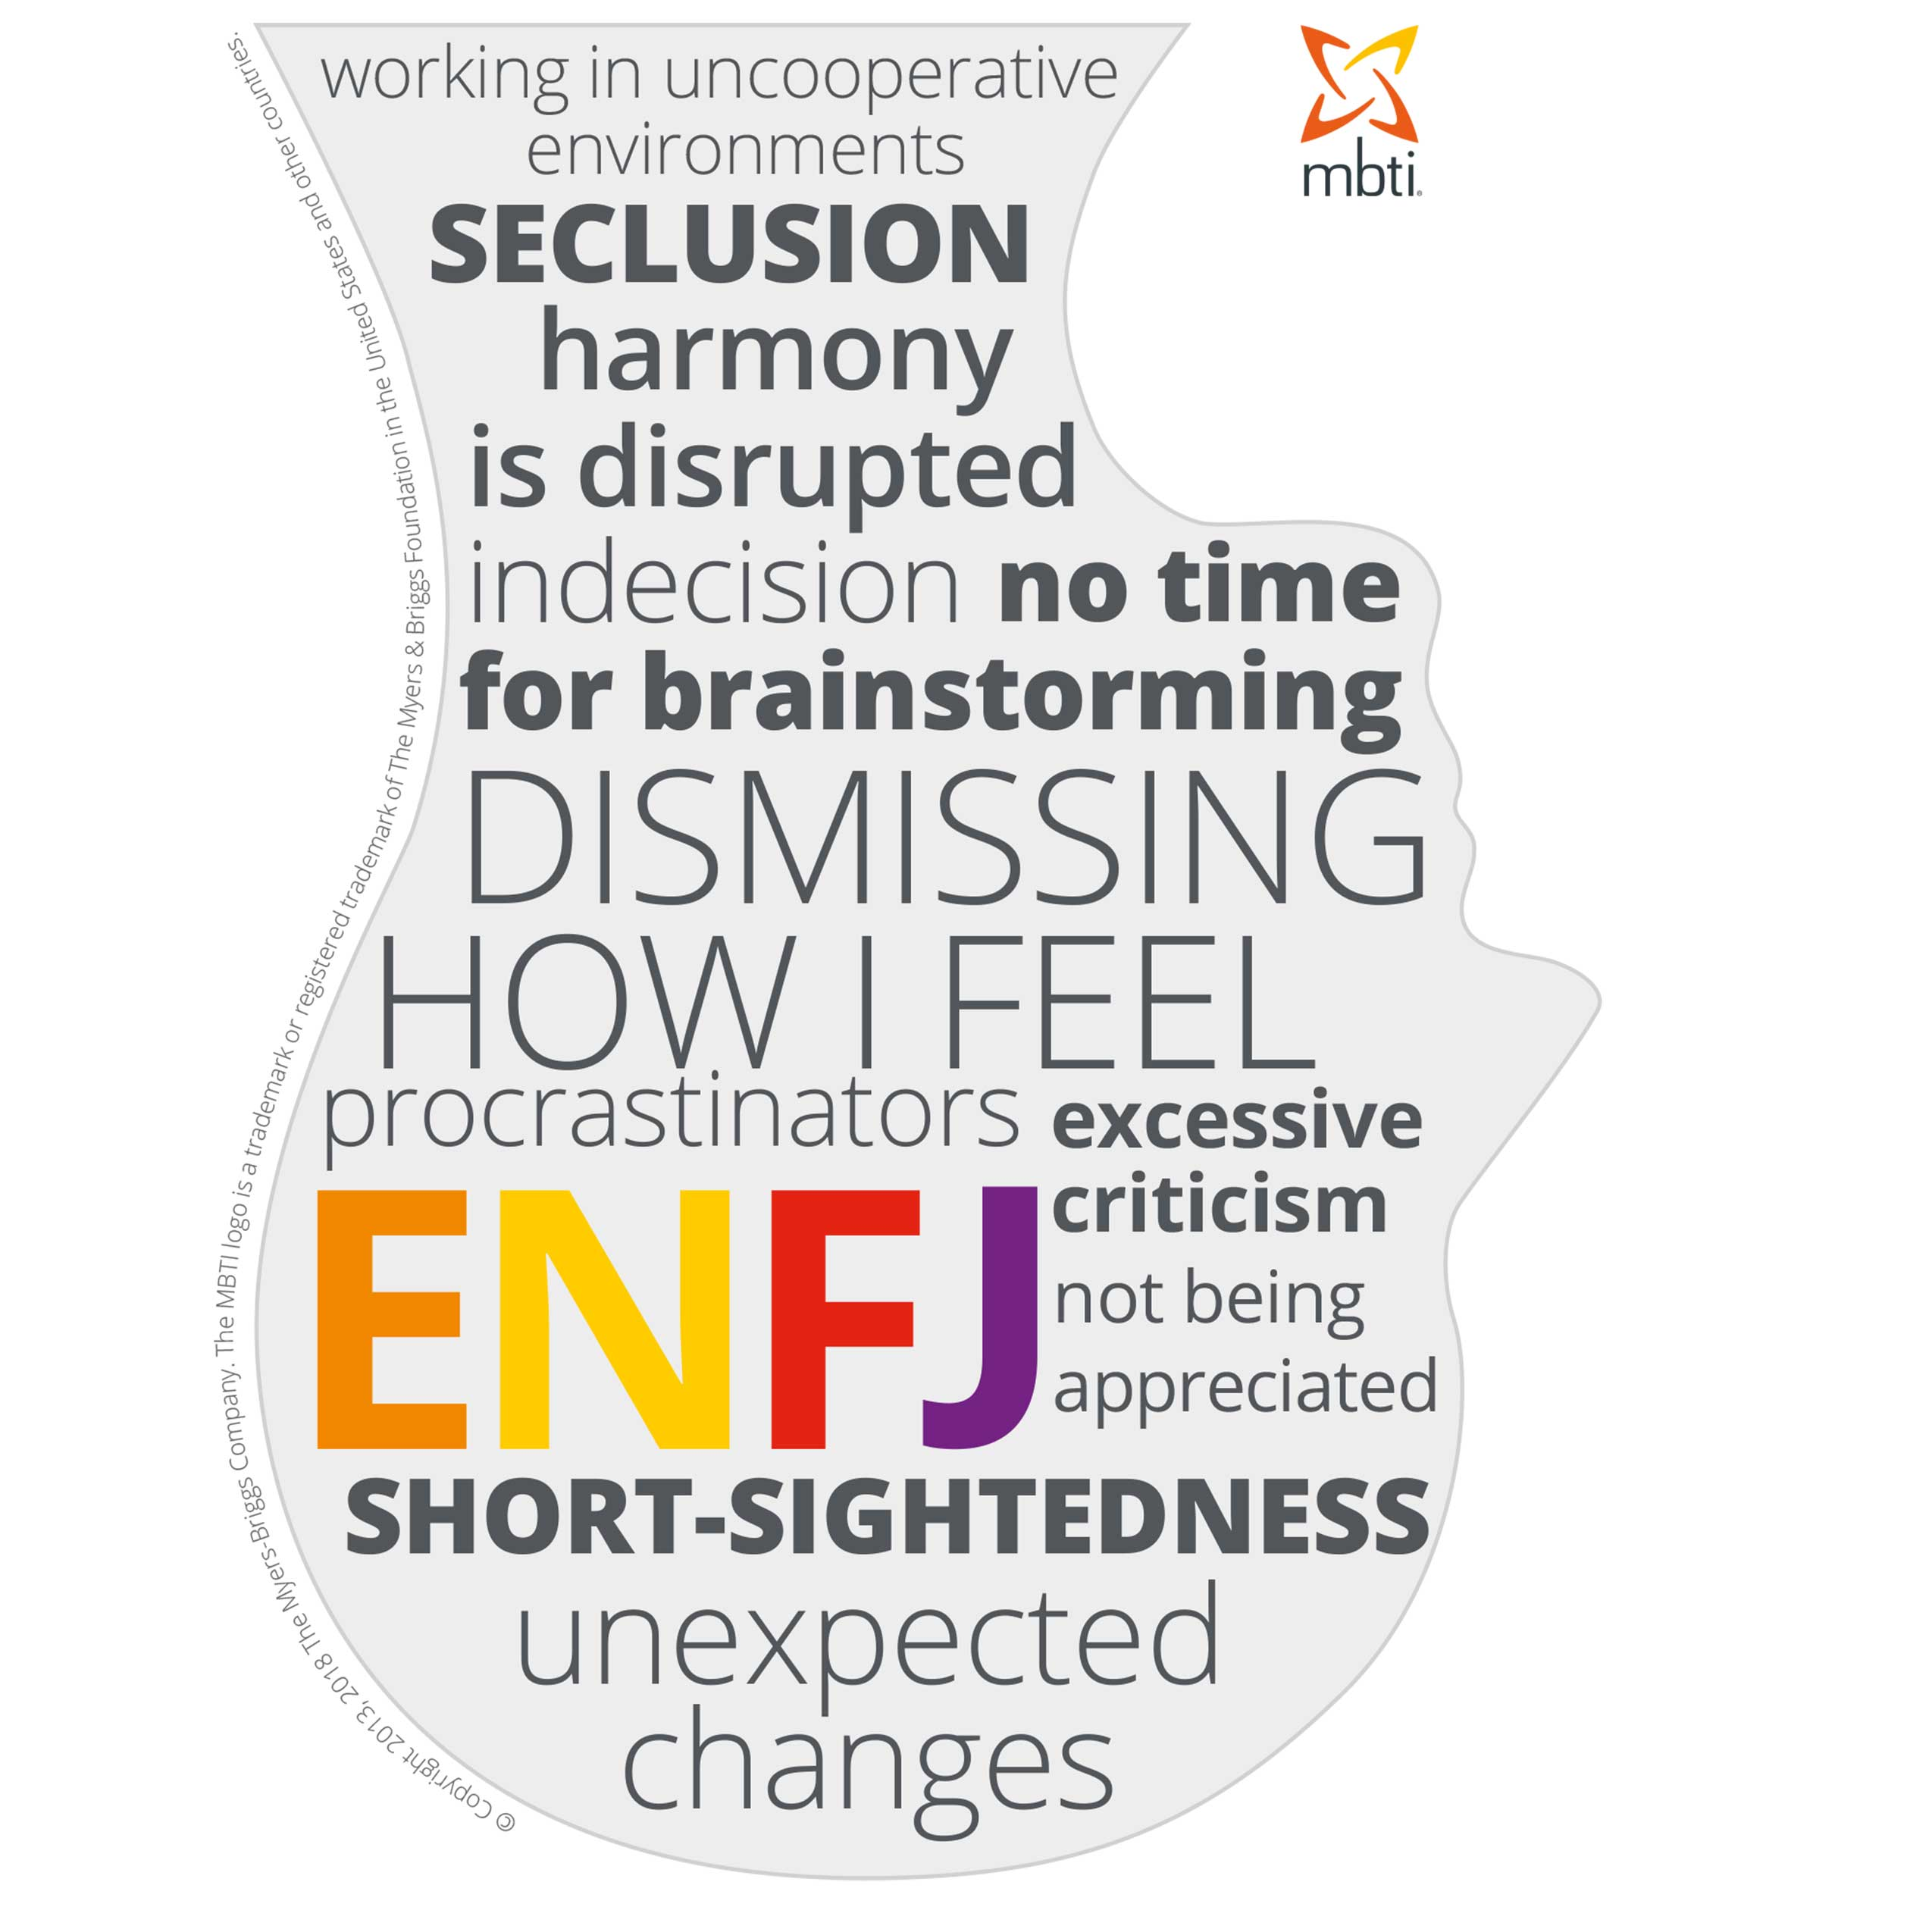 Typical stress triggers for ENFJs